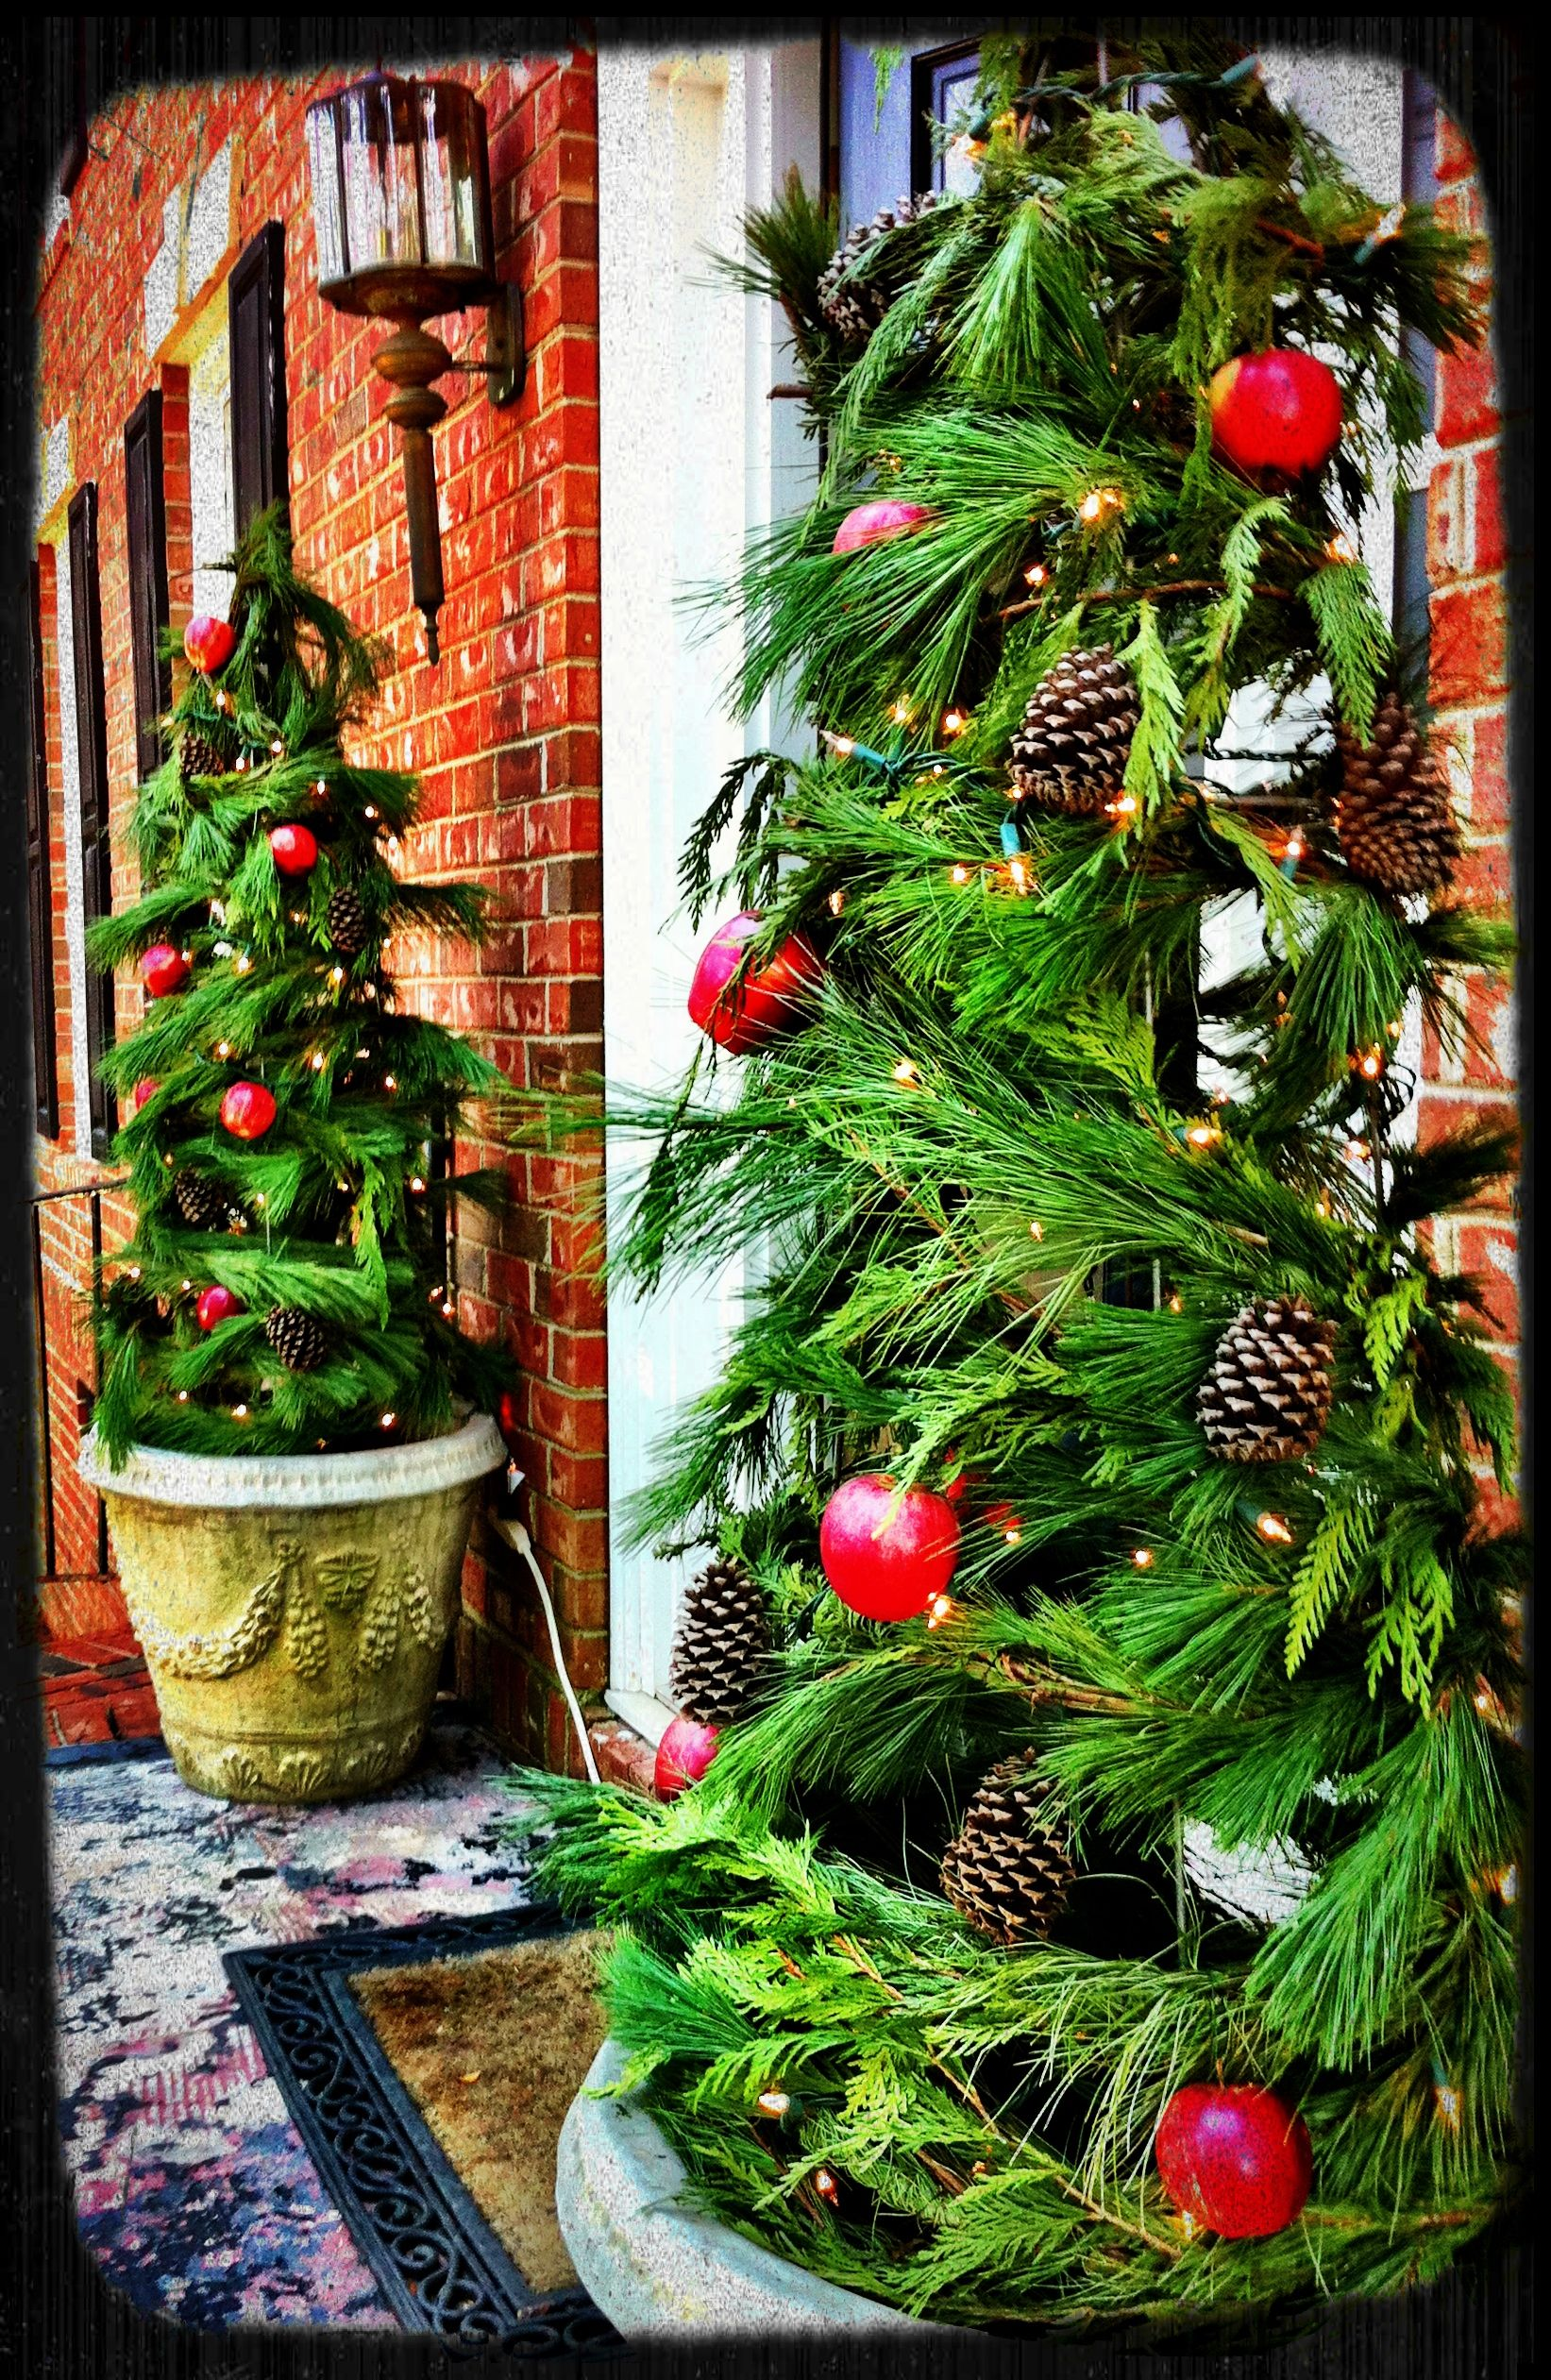 Tomato cage porch trees wrap garland a round tomato cages Garland tree decoration